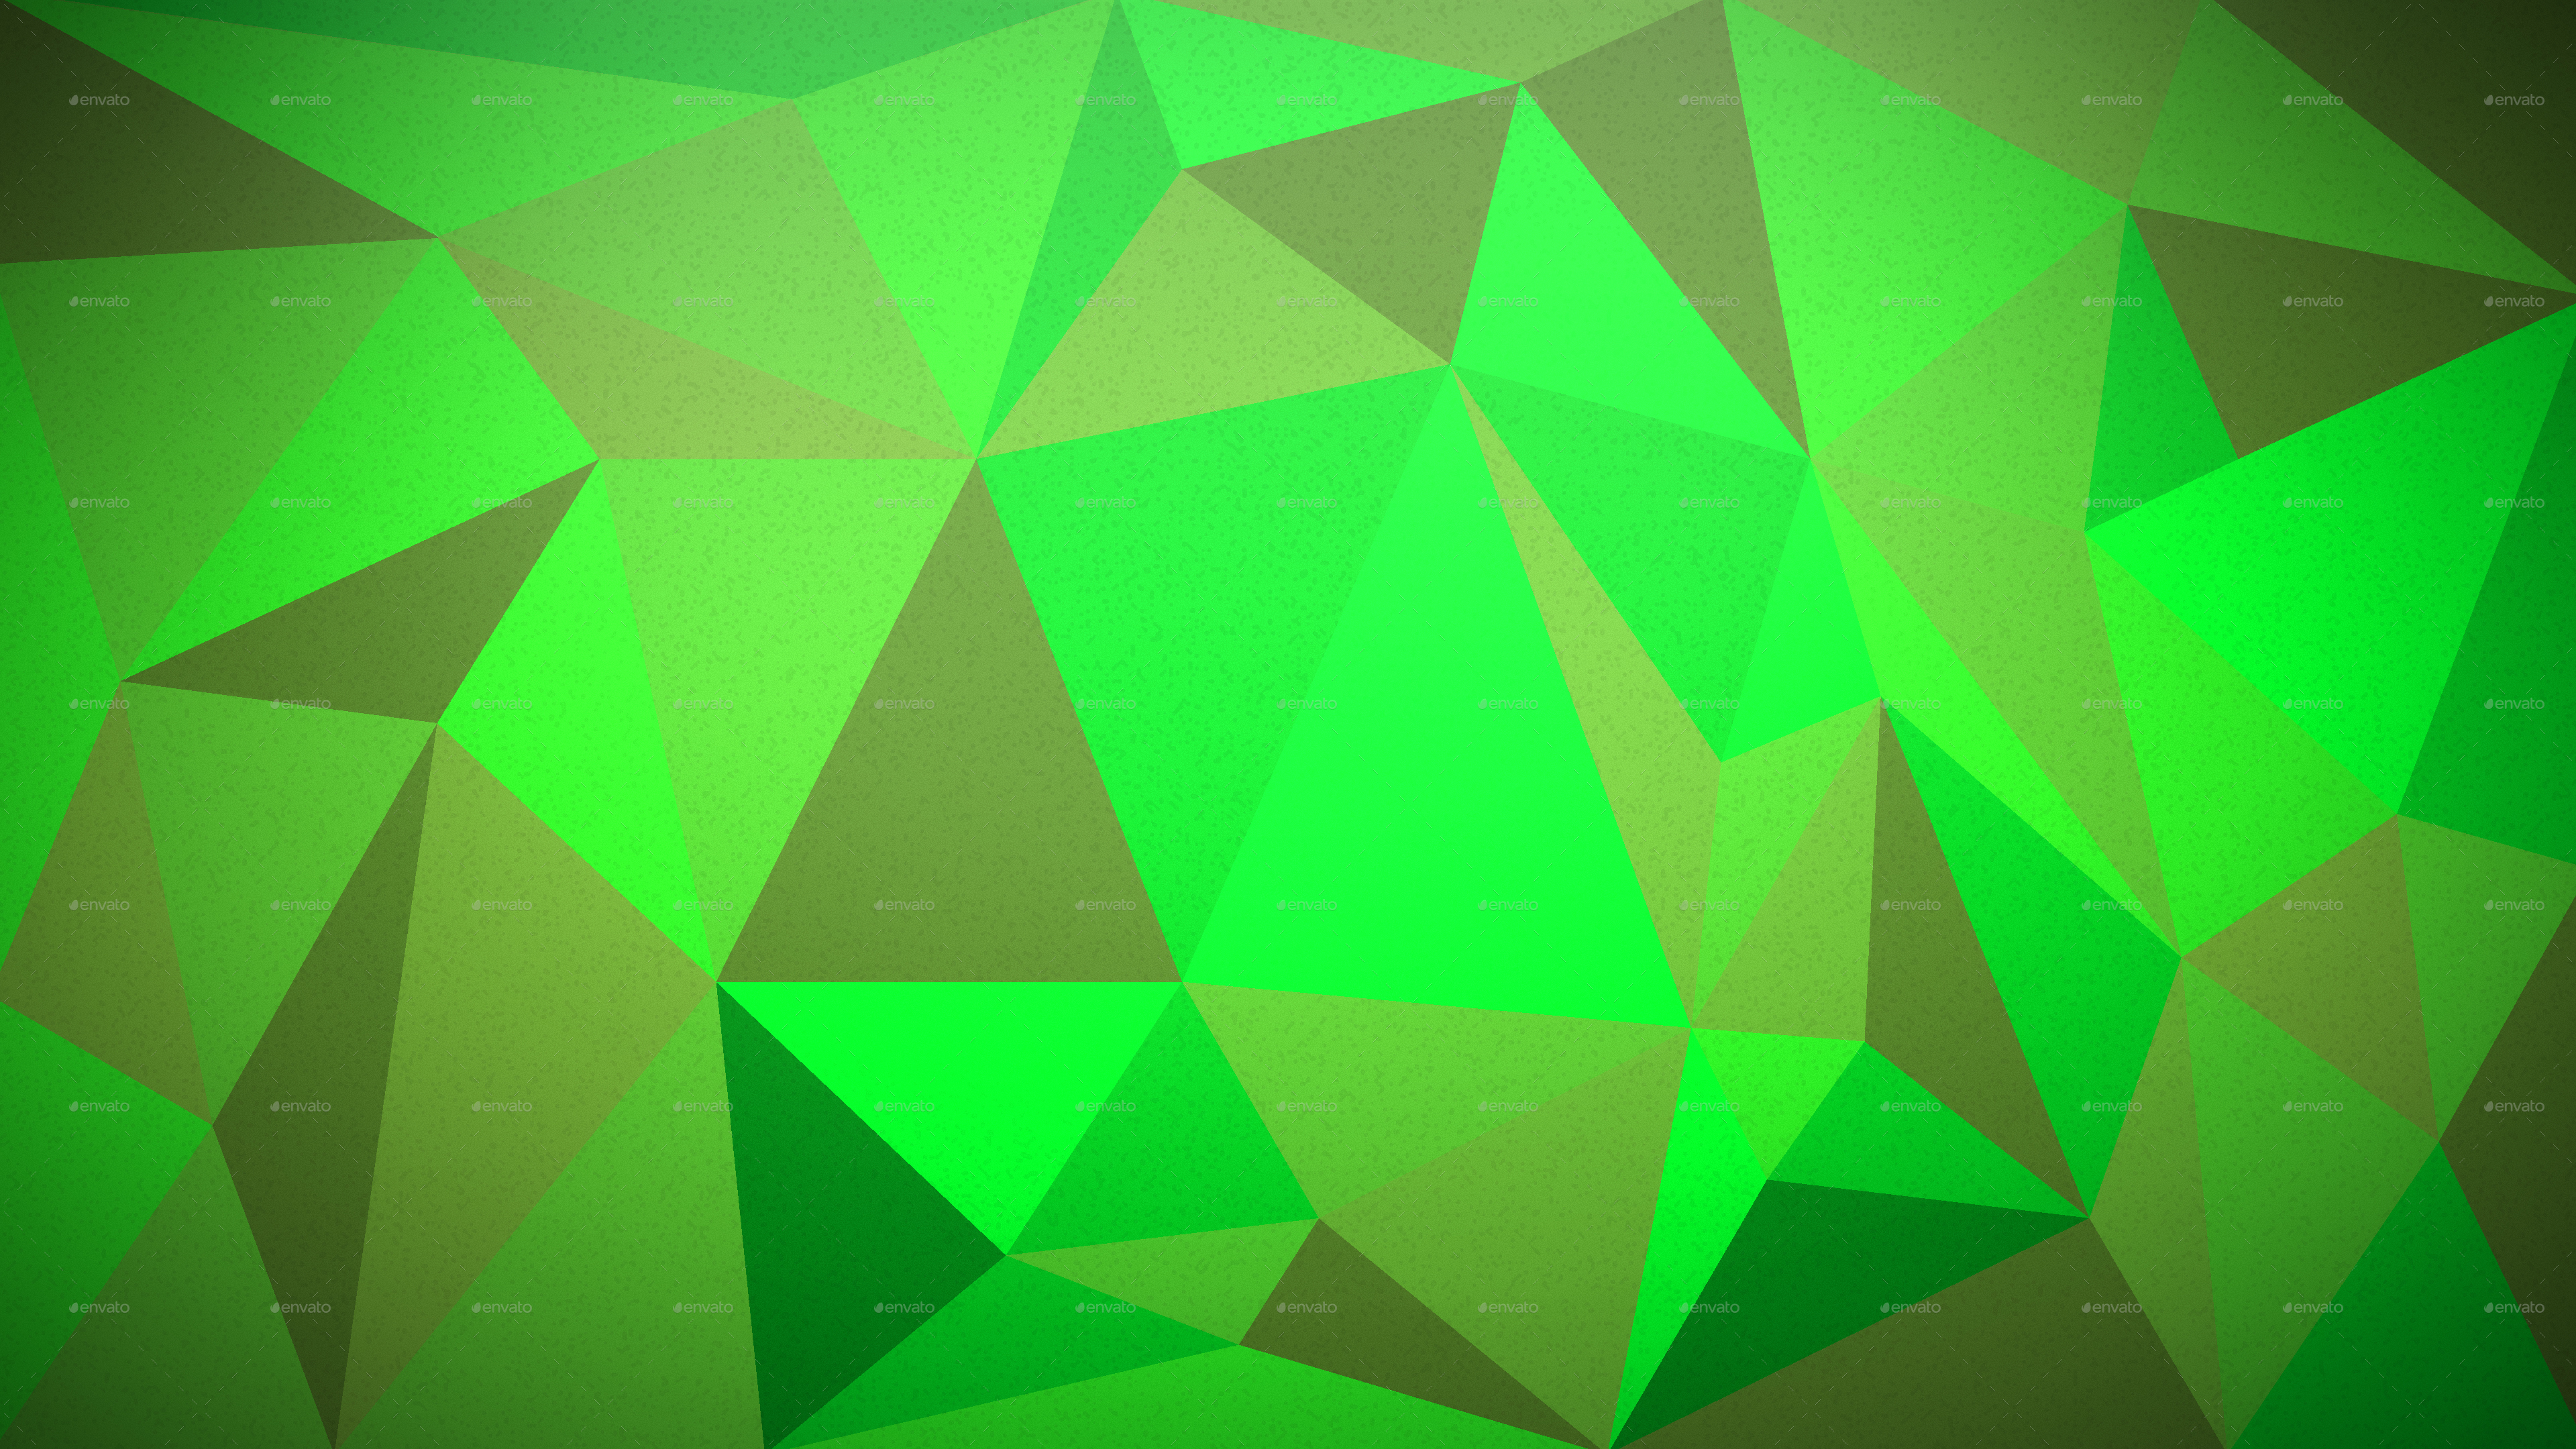 4k Polygonal Wallpapers By TheGraphicGuy